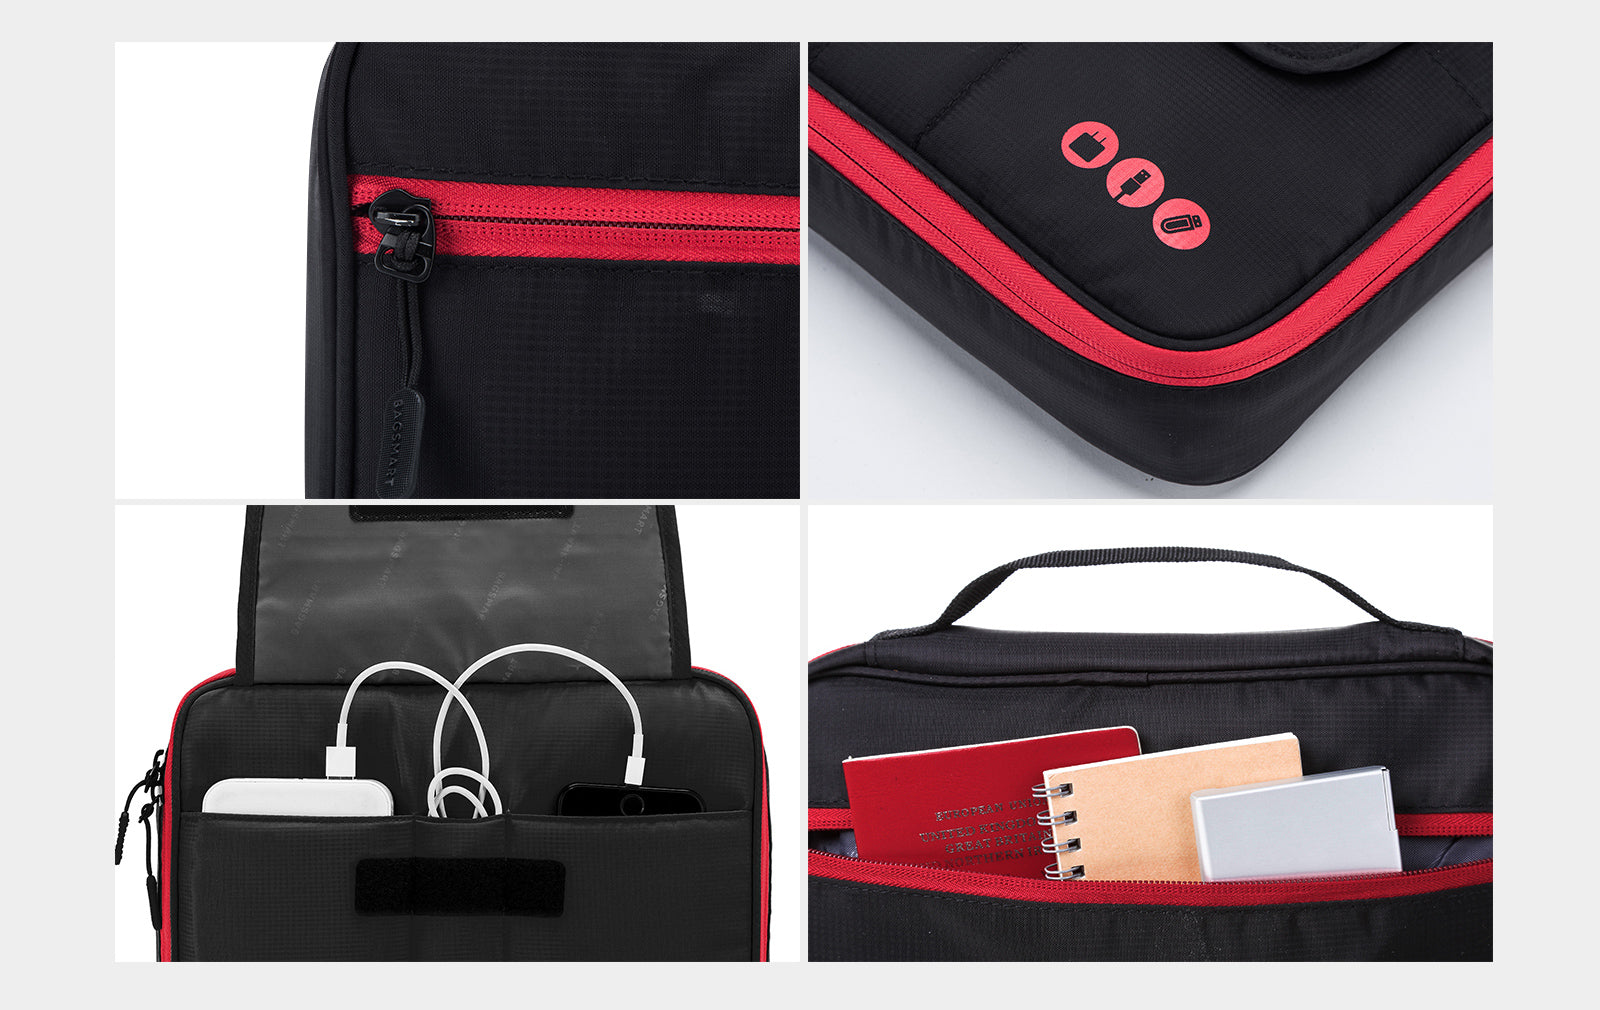 Universal Travel Cable Organizer Electronics Accessories iPad Carry Bag All in one Case